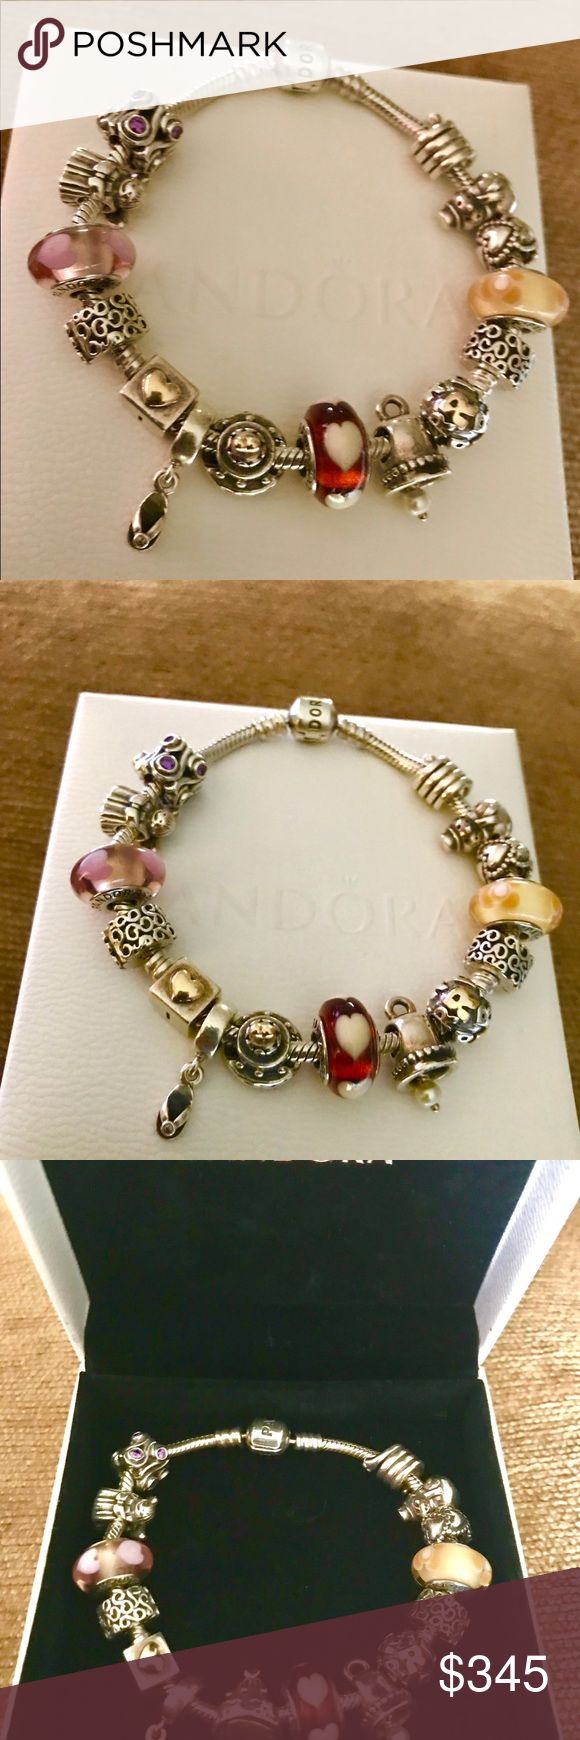 "PANDORA 15 Charms Clips 14k/925 & 7.9"" Bracelet !! Authentic Retired Pandora 15 Charms 14k 925  & 7.9"" Bracelet !!! Retail $825 in Very Good Preowned Condition ..!!! $3 Extra for Pandora Bracelet Box !! Please look picture for details !!! Please don't make really low offers !! Thanks for understanding ☺️ Pandora Jewelry Bracelets"